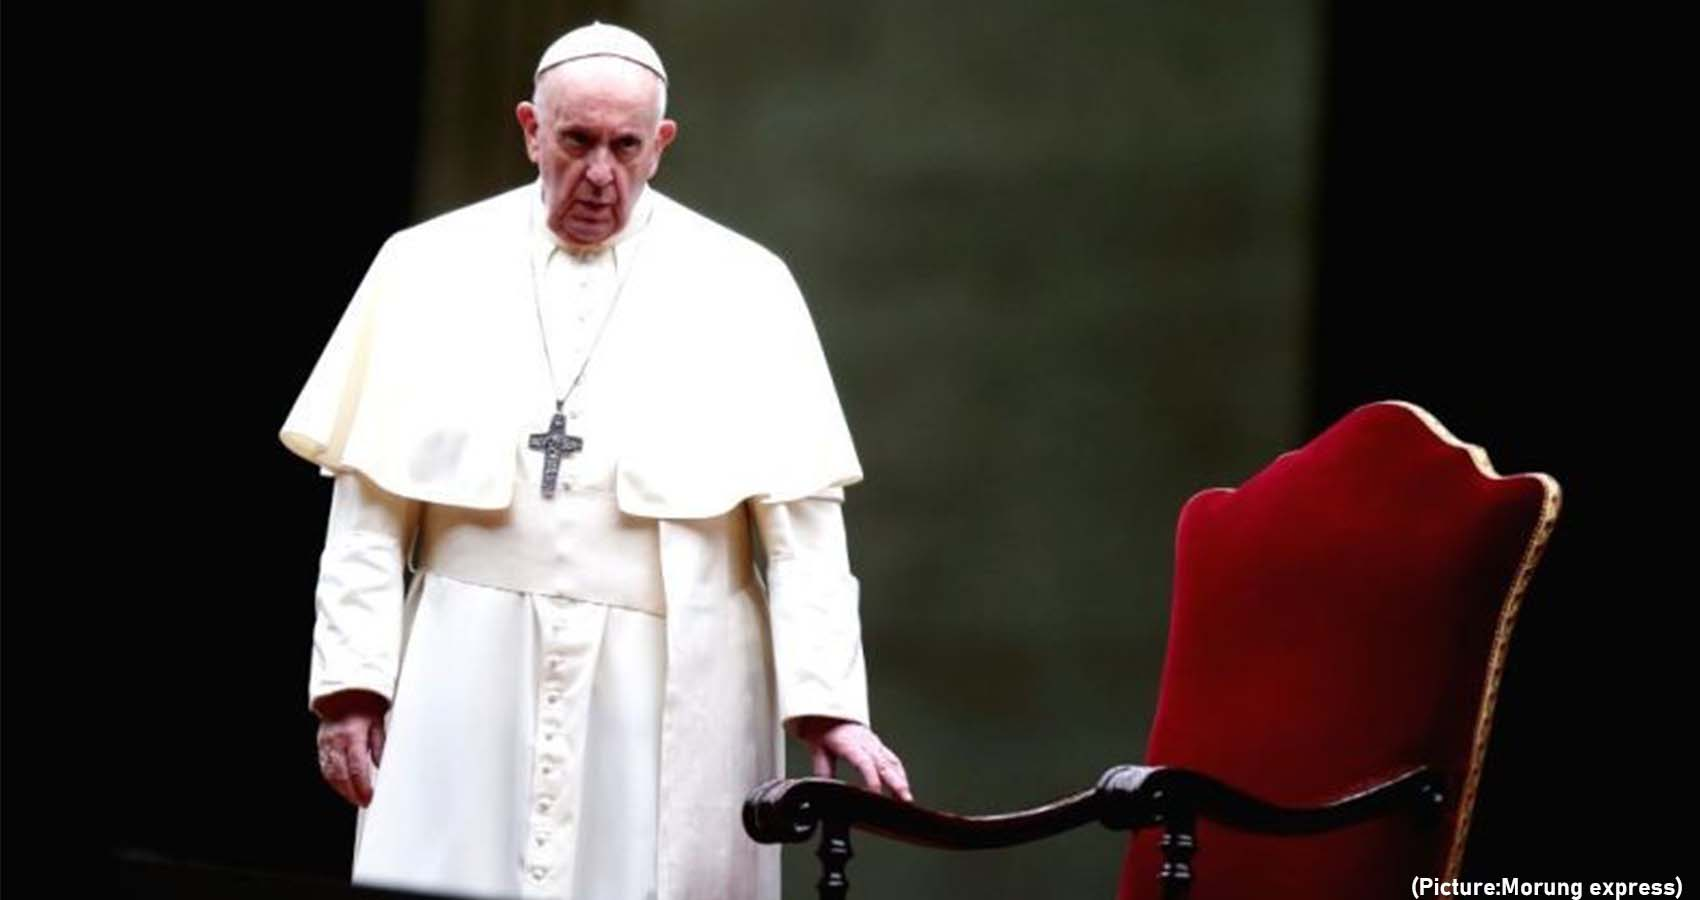 'Some Wanted Me Dead:' Pope Acknowledges Right-Wing Critics